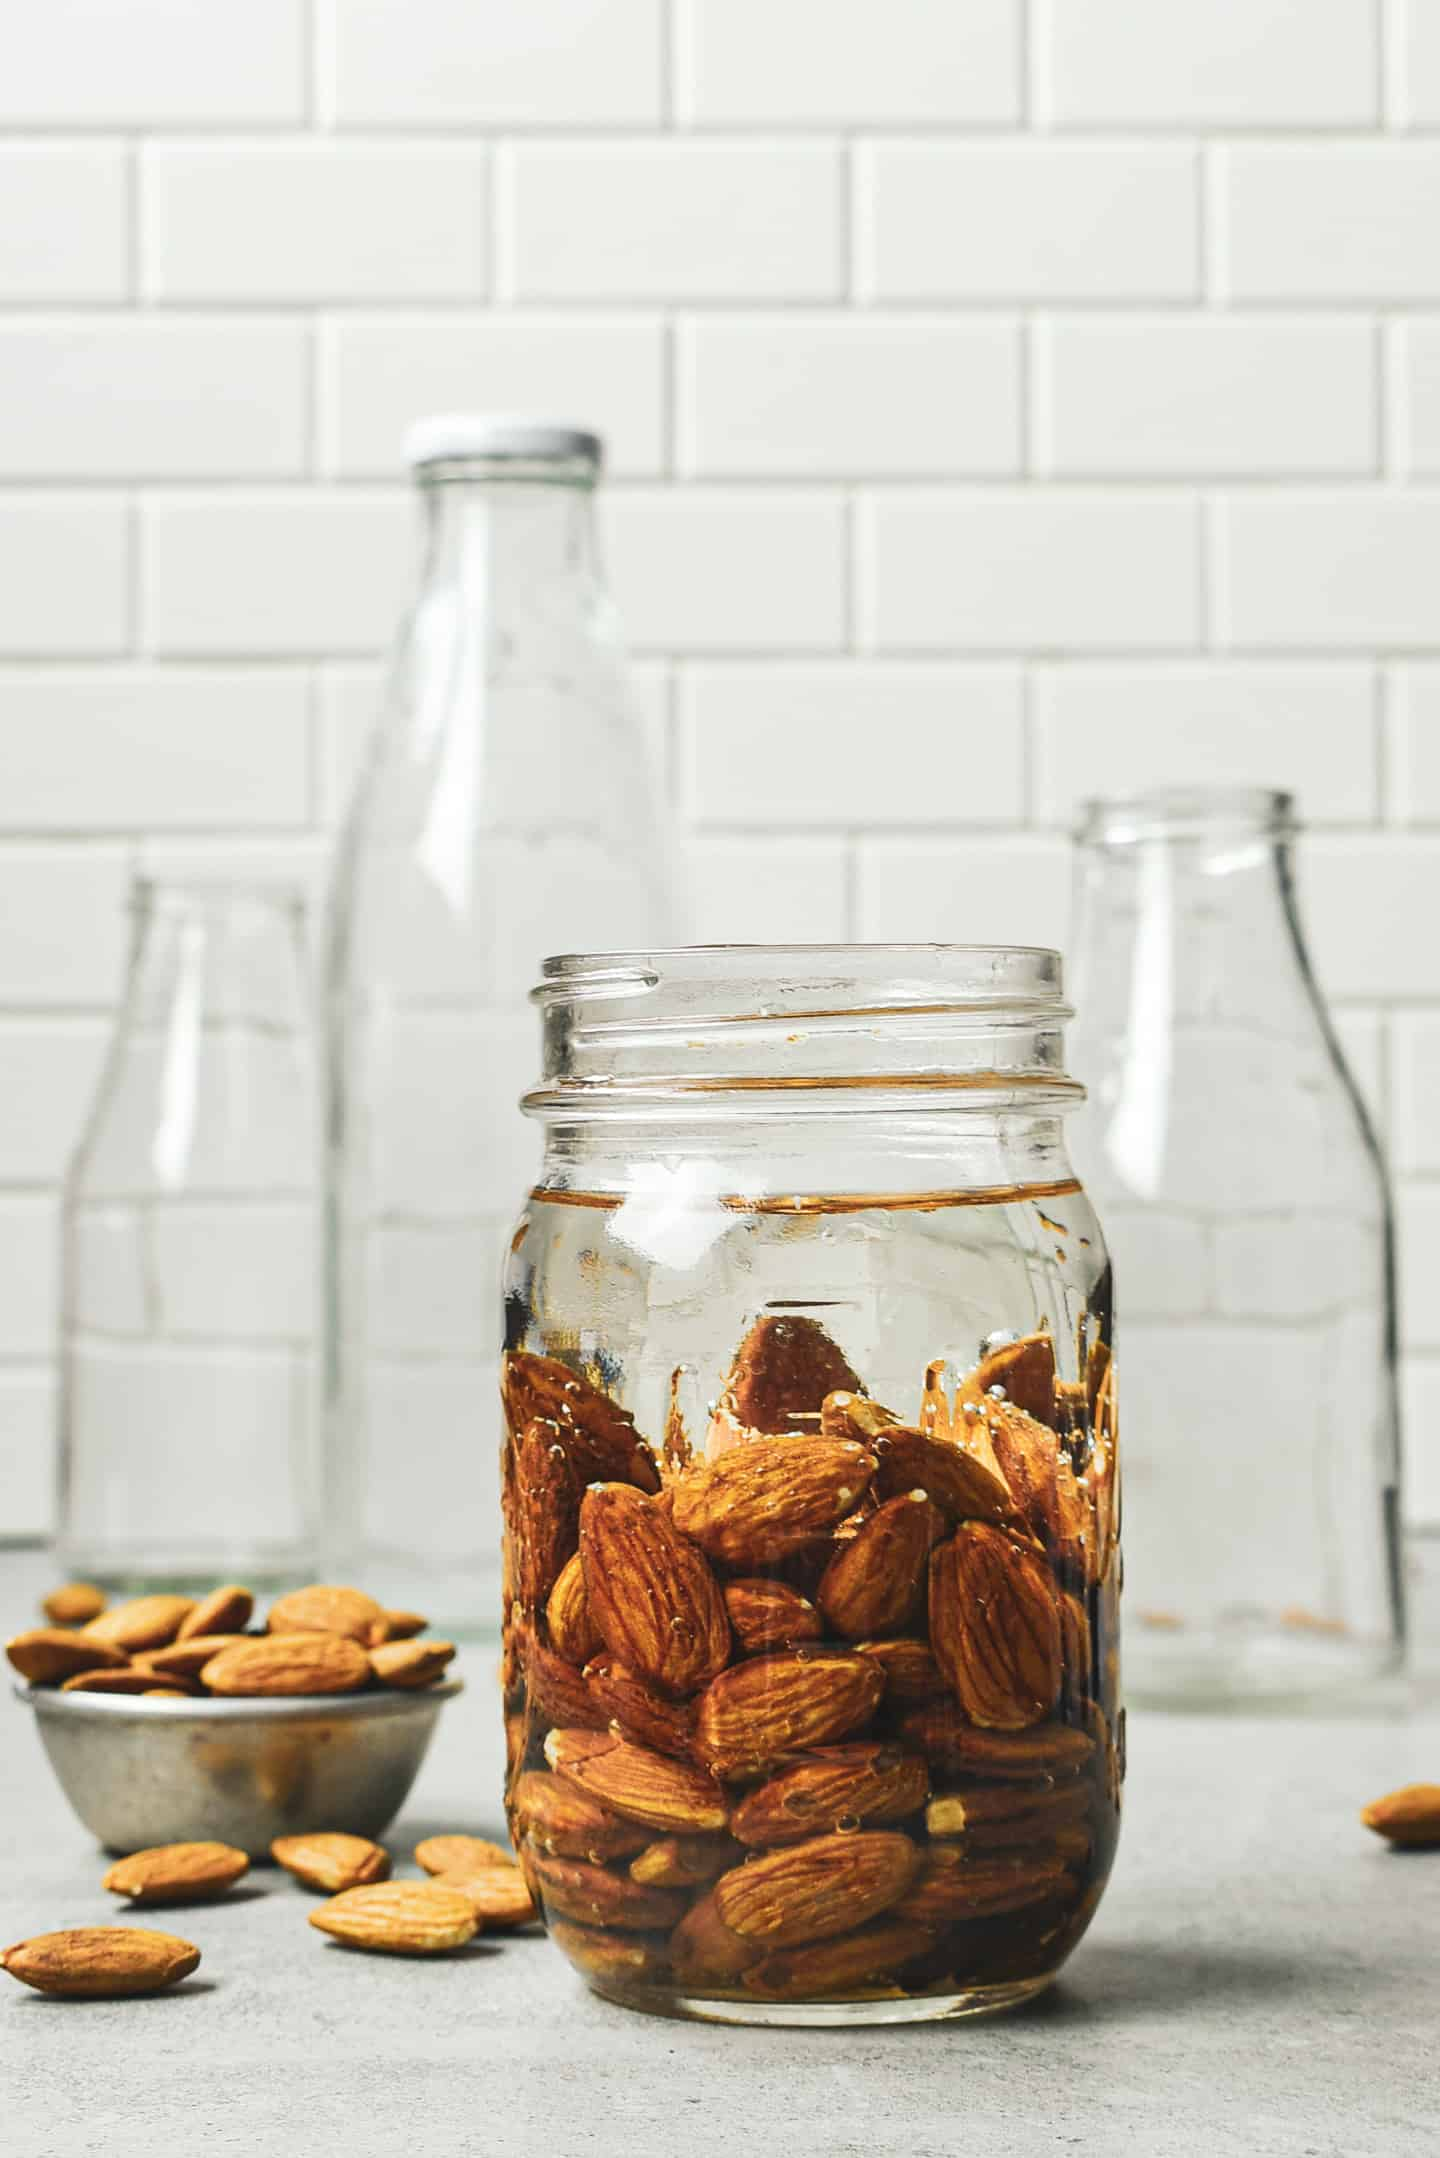 Almonds soaking in a jar of water.